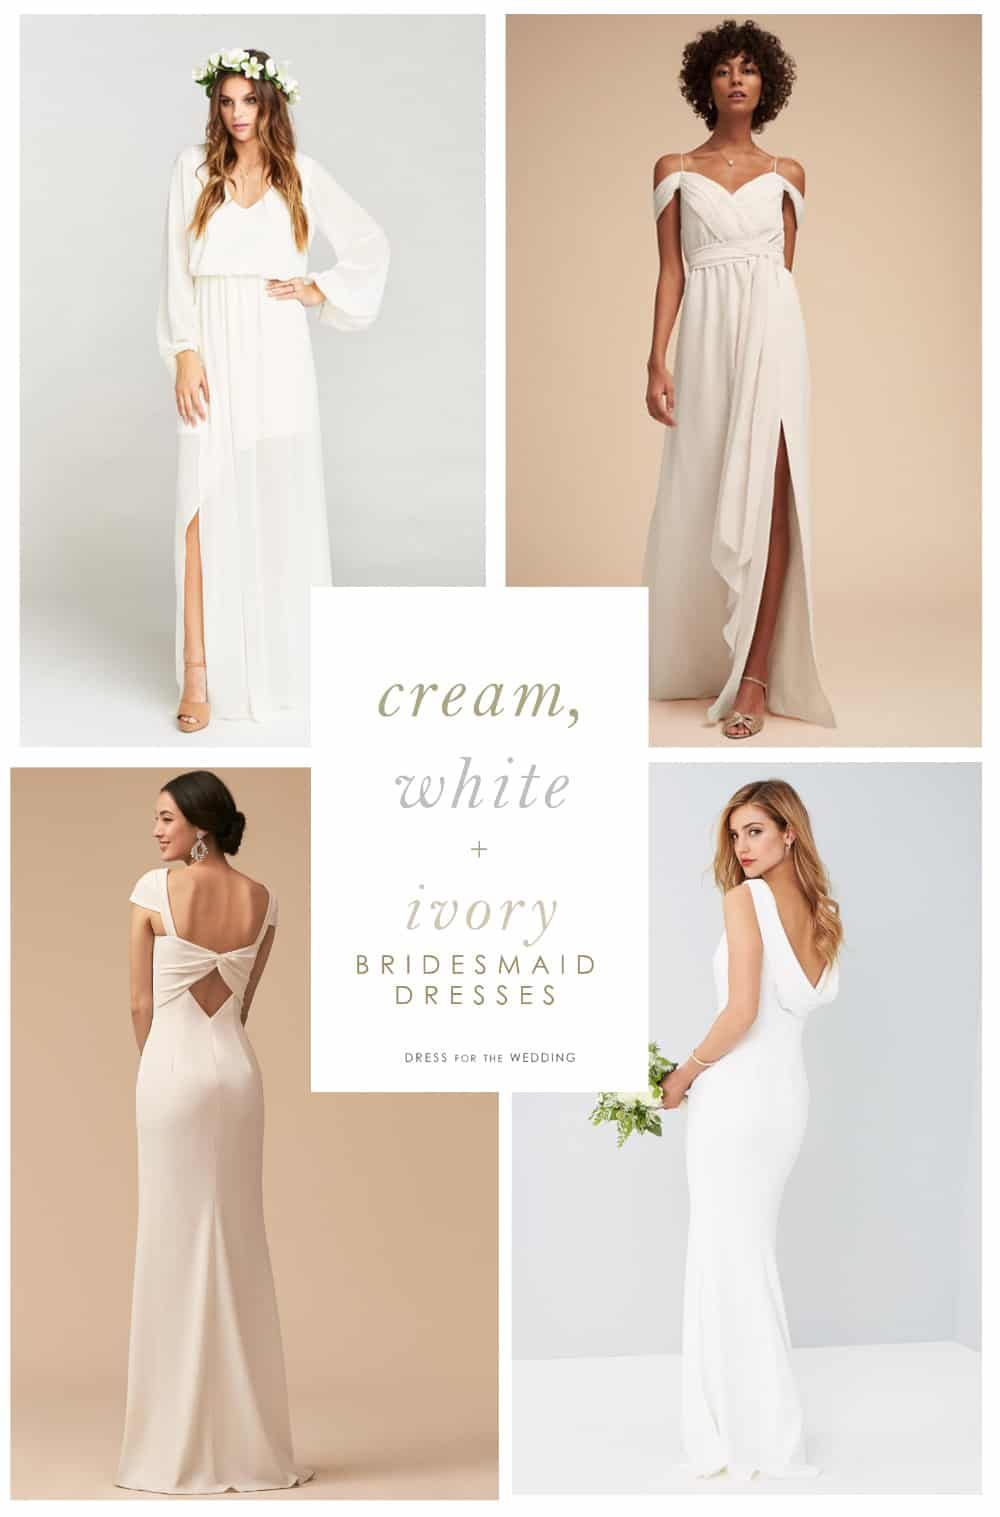 Cream White And Ivory Bridesmaid Dresses Dress For The Wedding Ivory Bridesmaid Dresses Bridesmaid Dresses Cream Bridesmaid Dresses